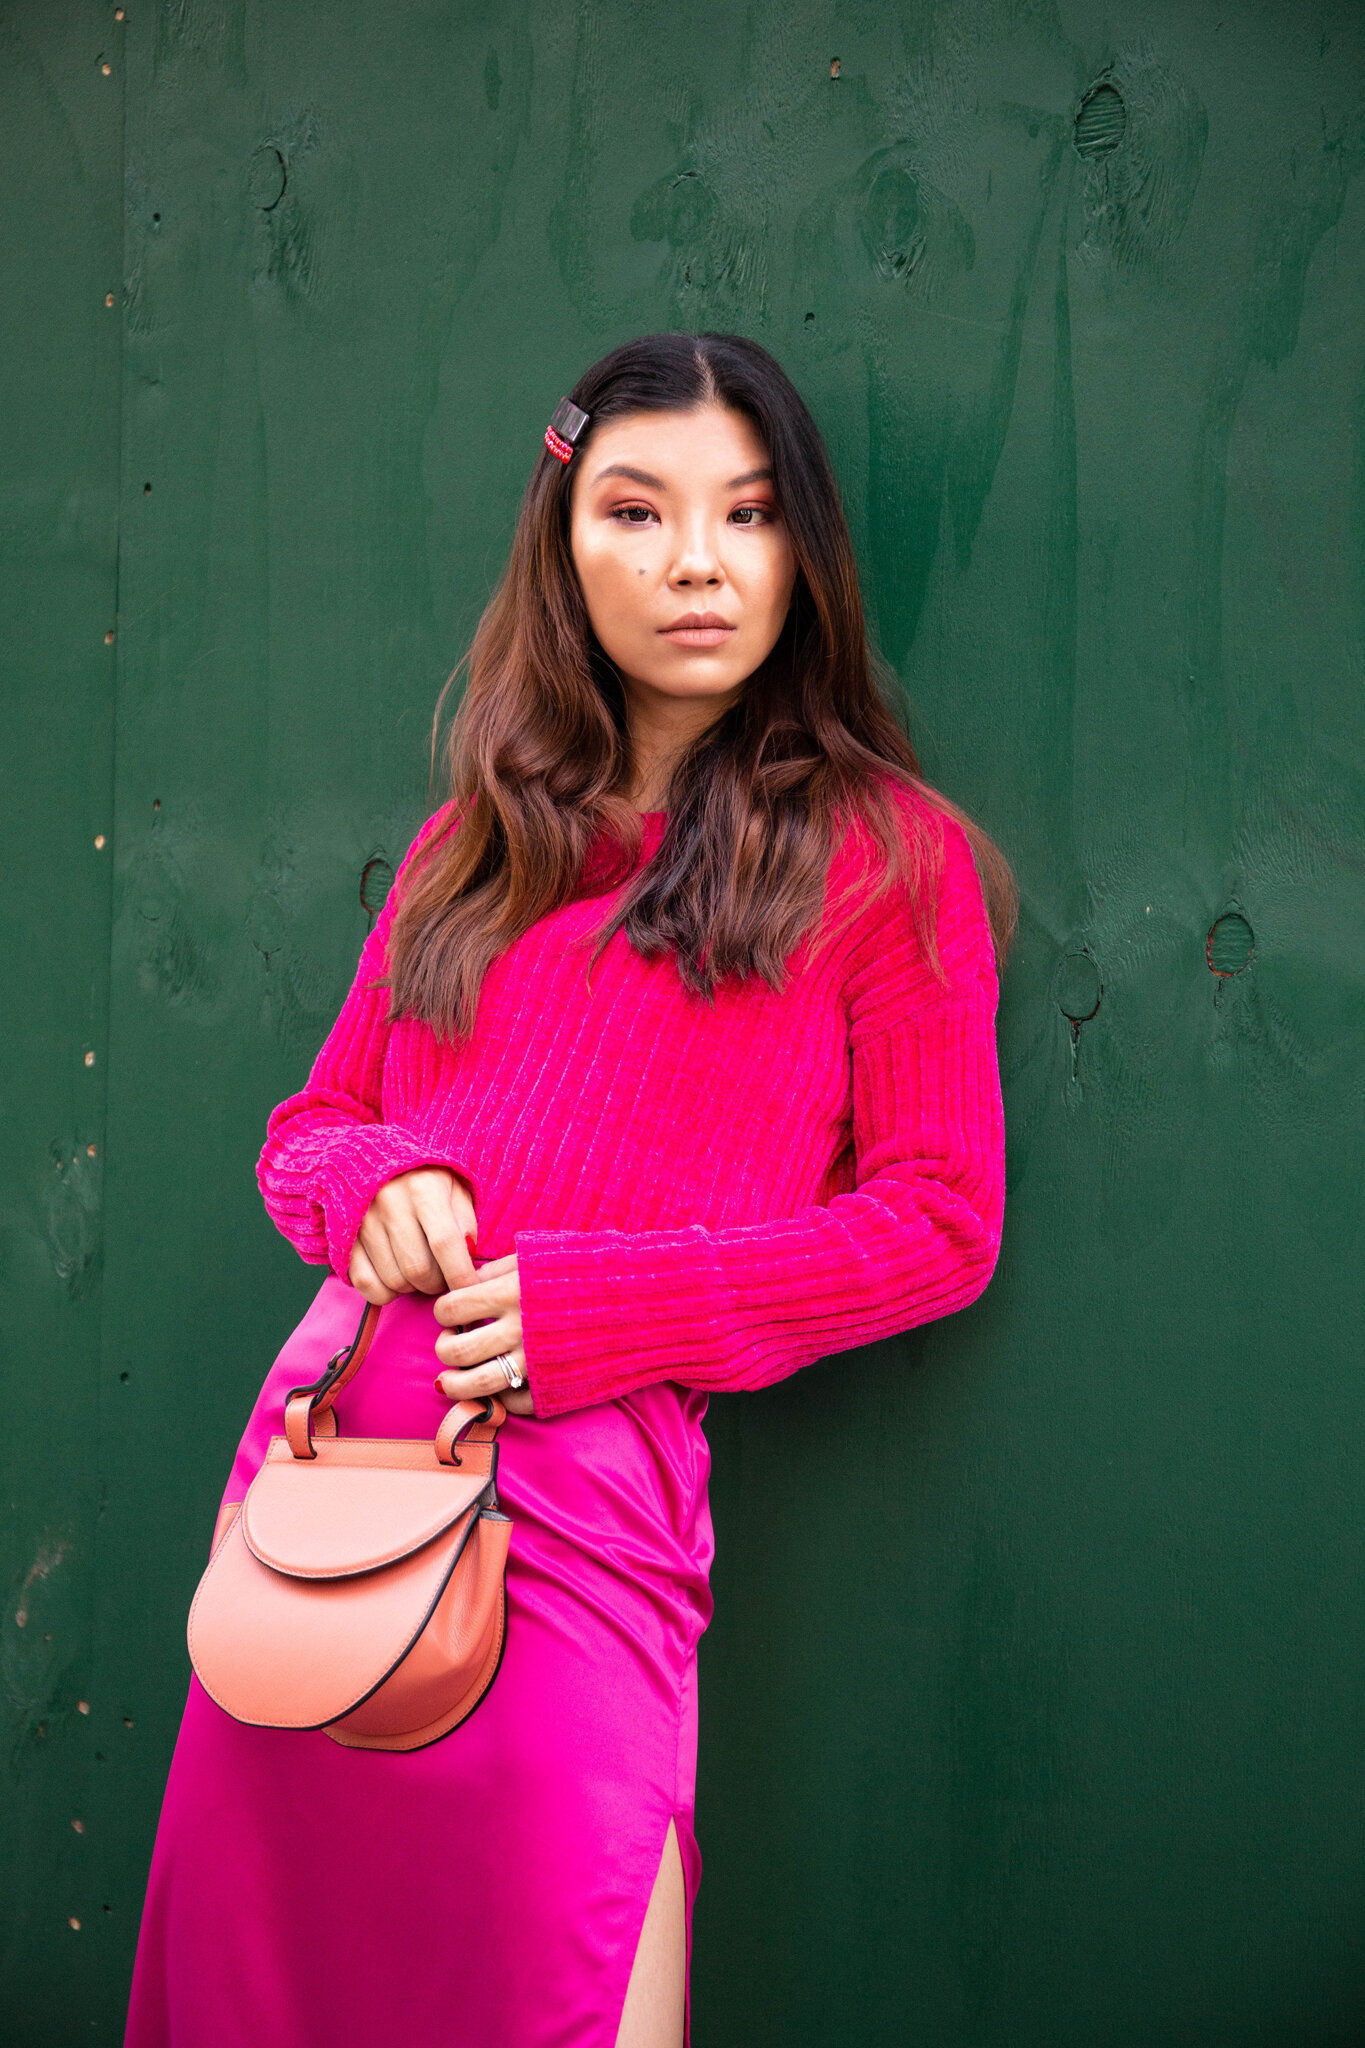 Hot pink outfit